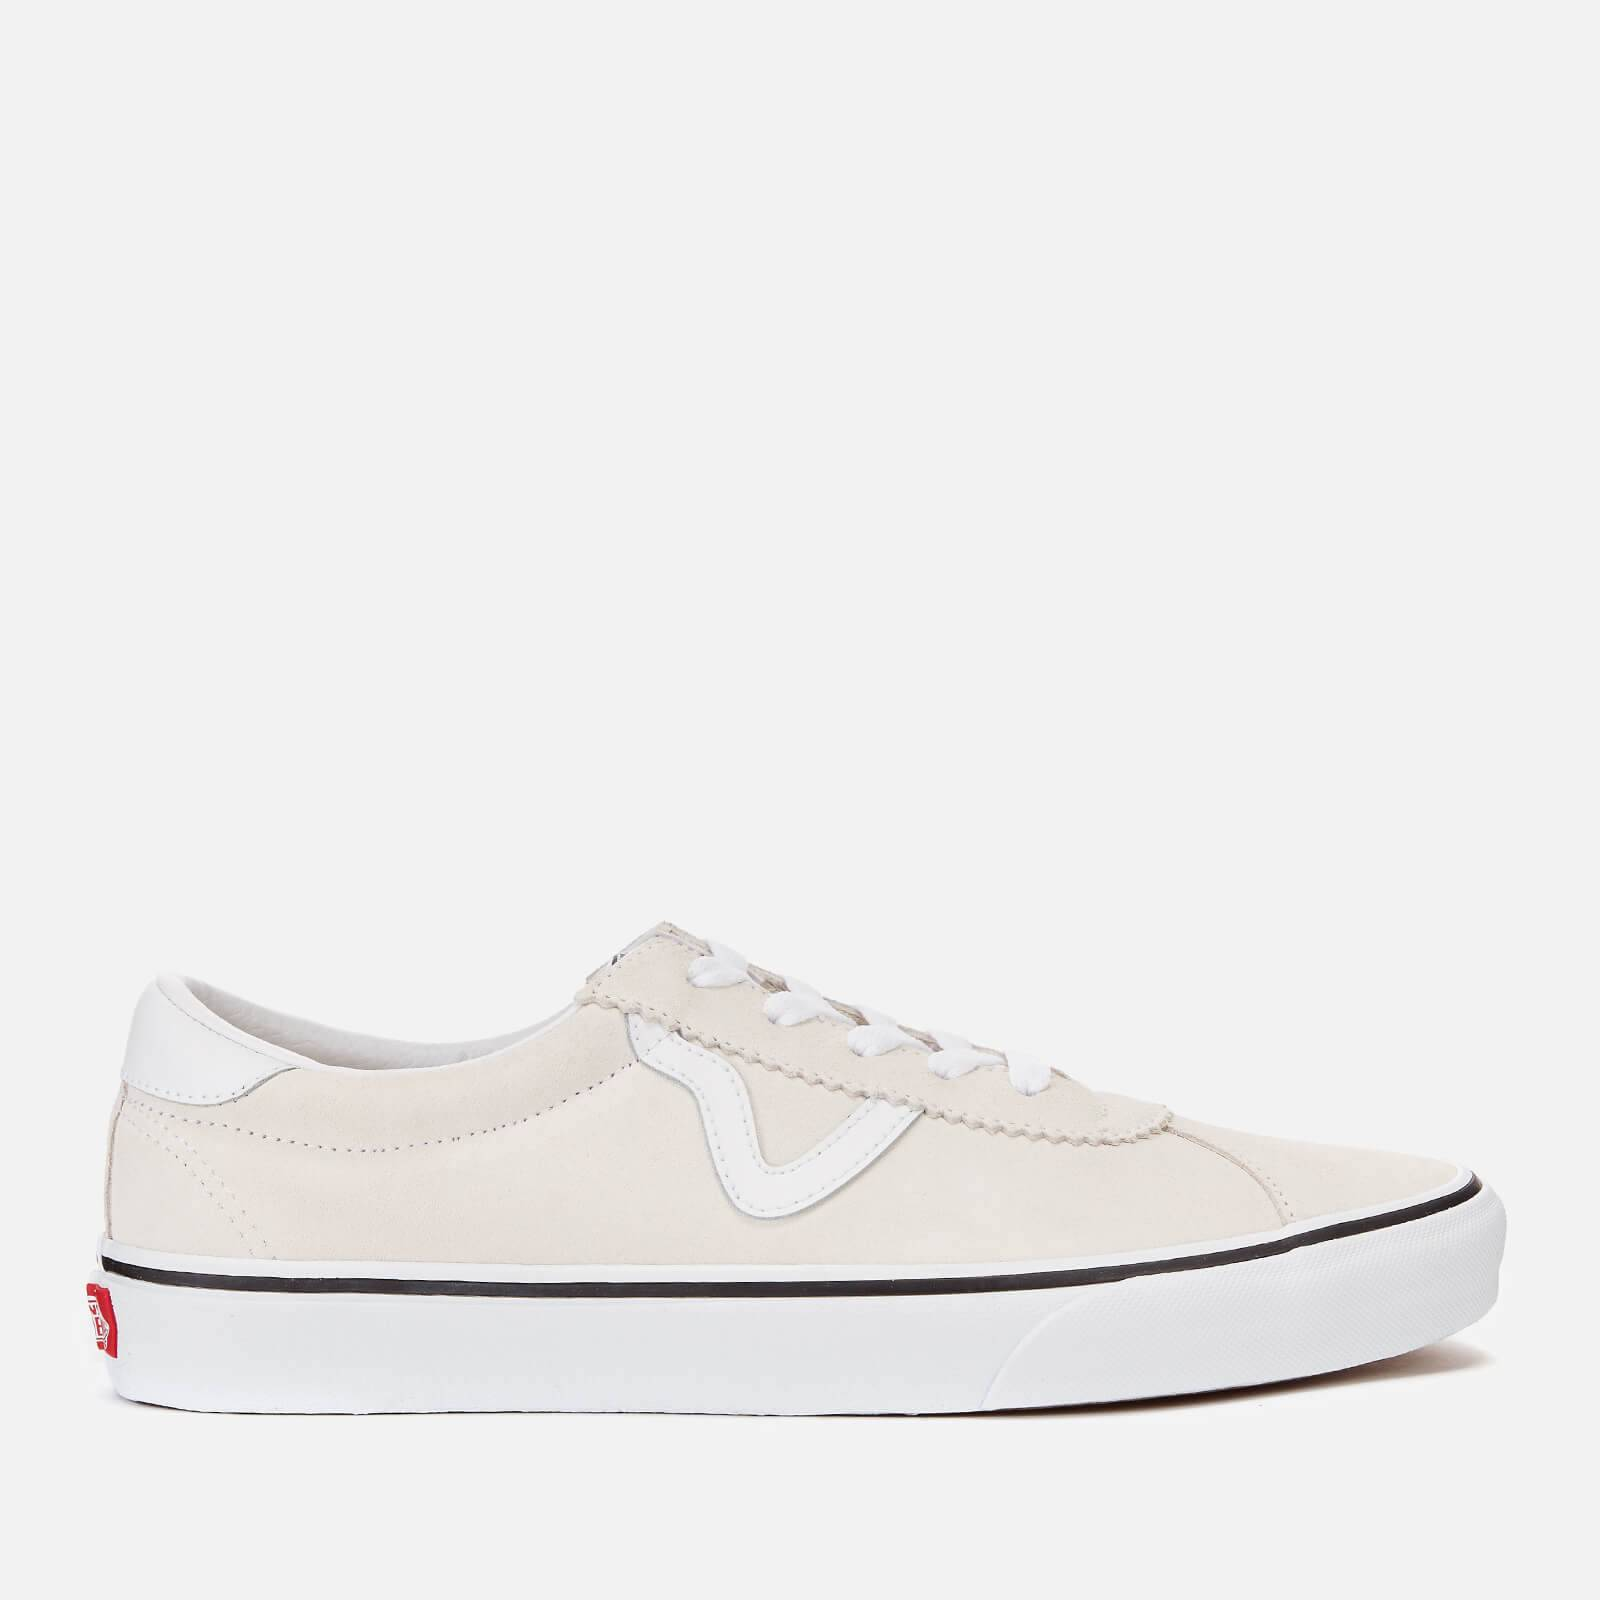 Vans Sport Suede Trainers - White - UK 11